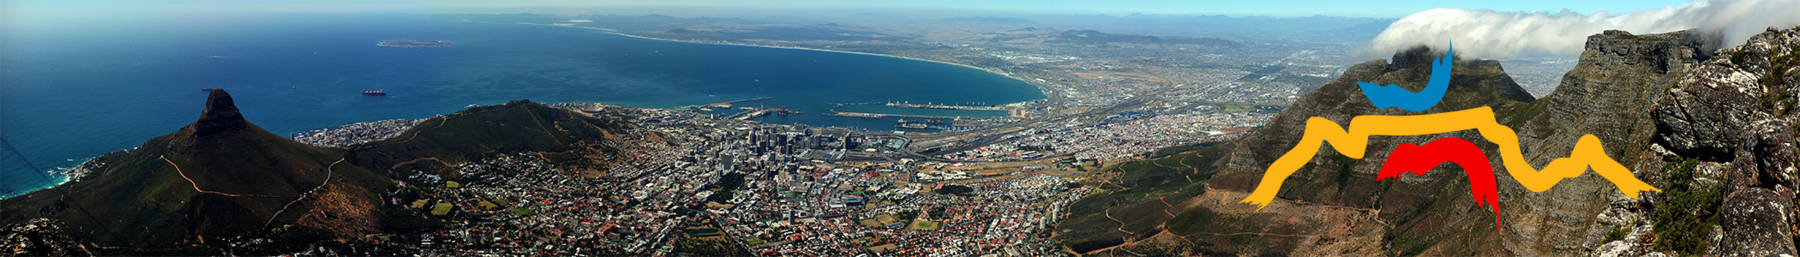 Panoramic view of the Cape Town city center, from Table Mountain